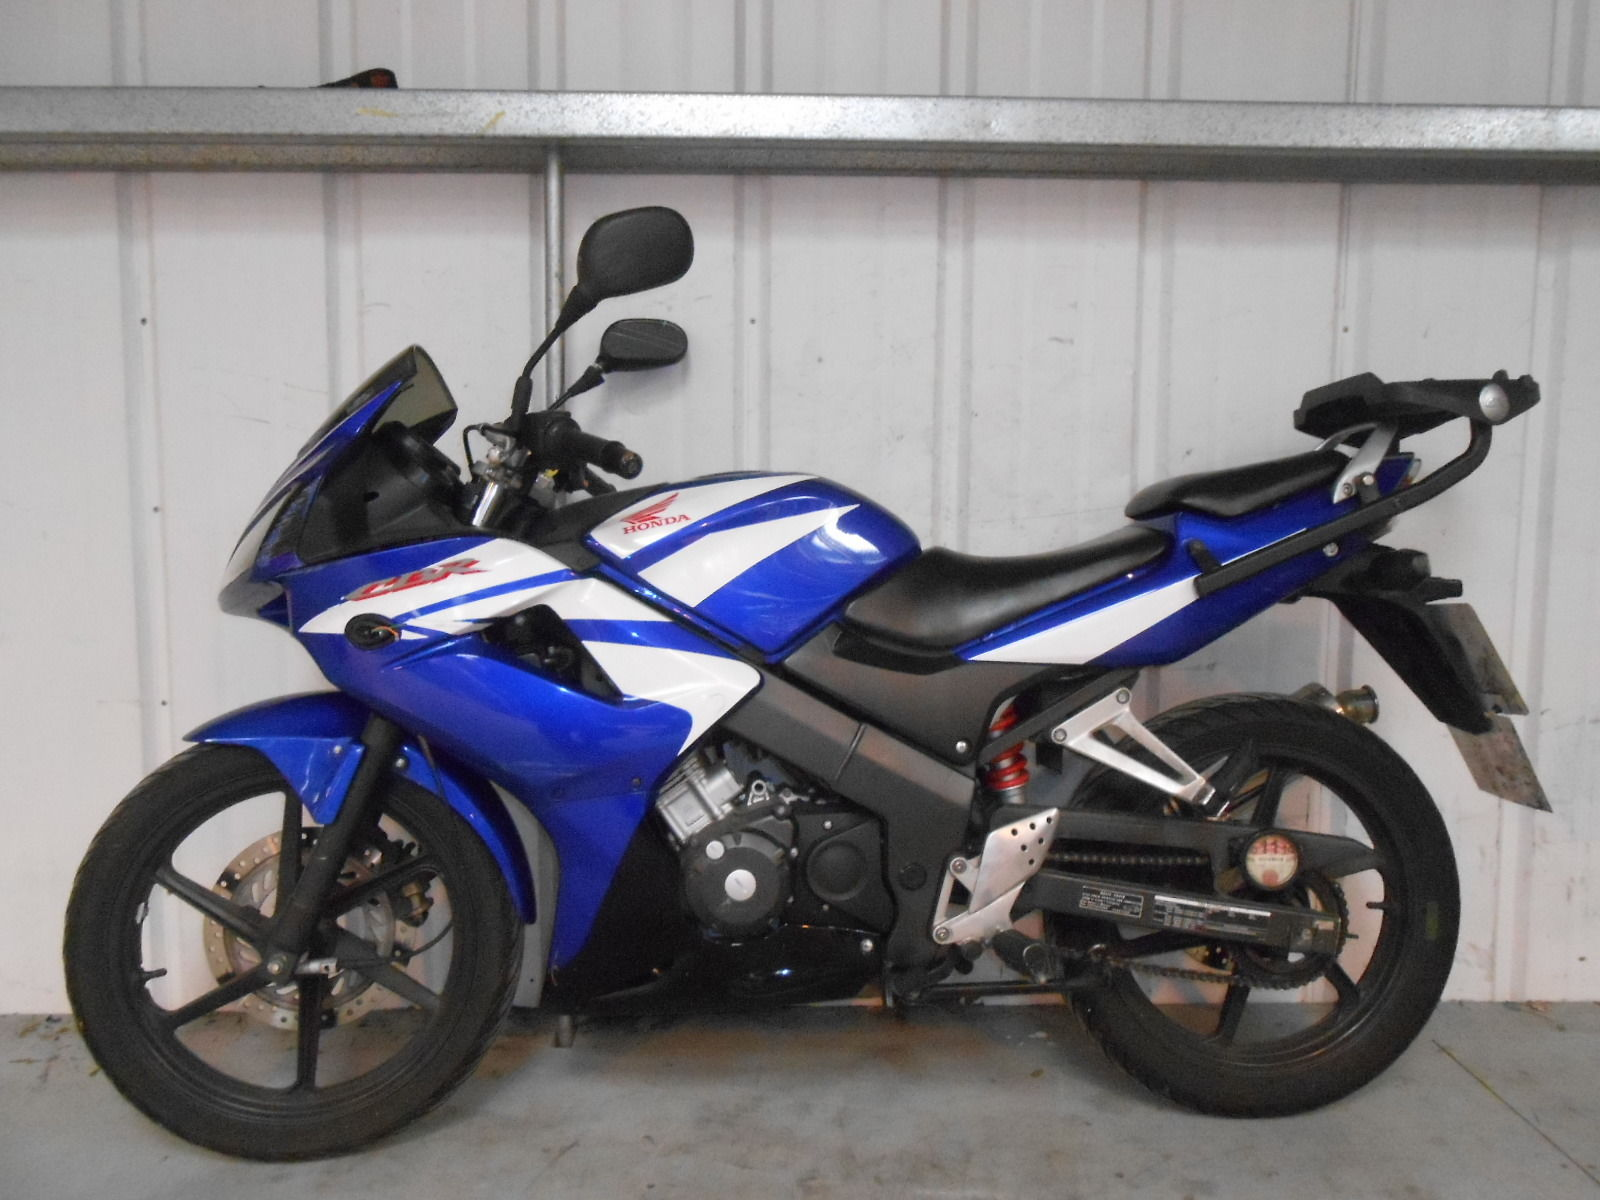 2007 honda cbr 125 rw 7 blue damaged spares or repair. Black Bedroom Furniture Sets. Home Design Ideas